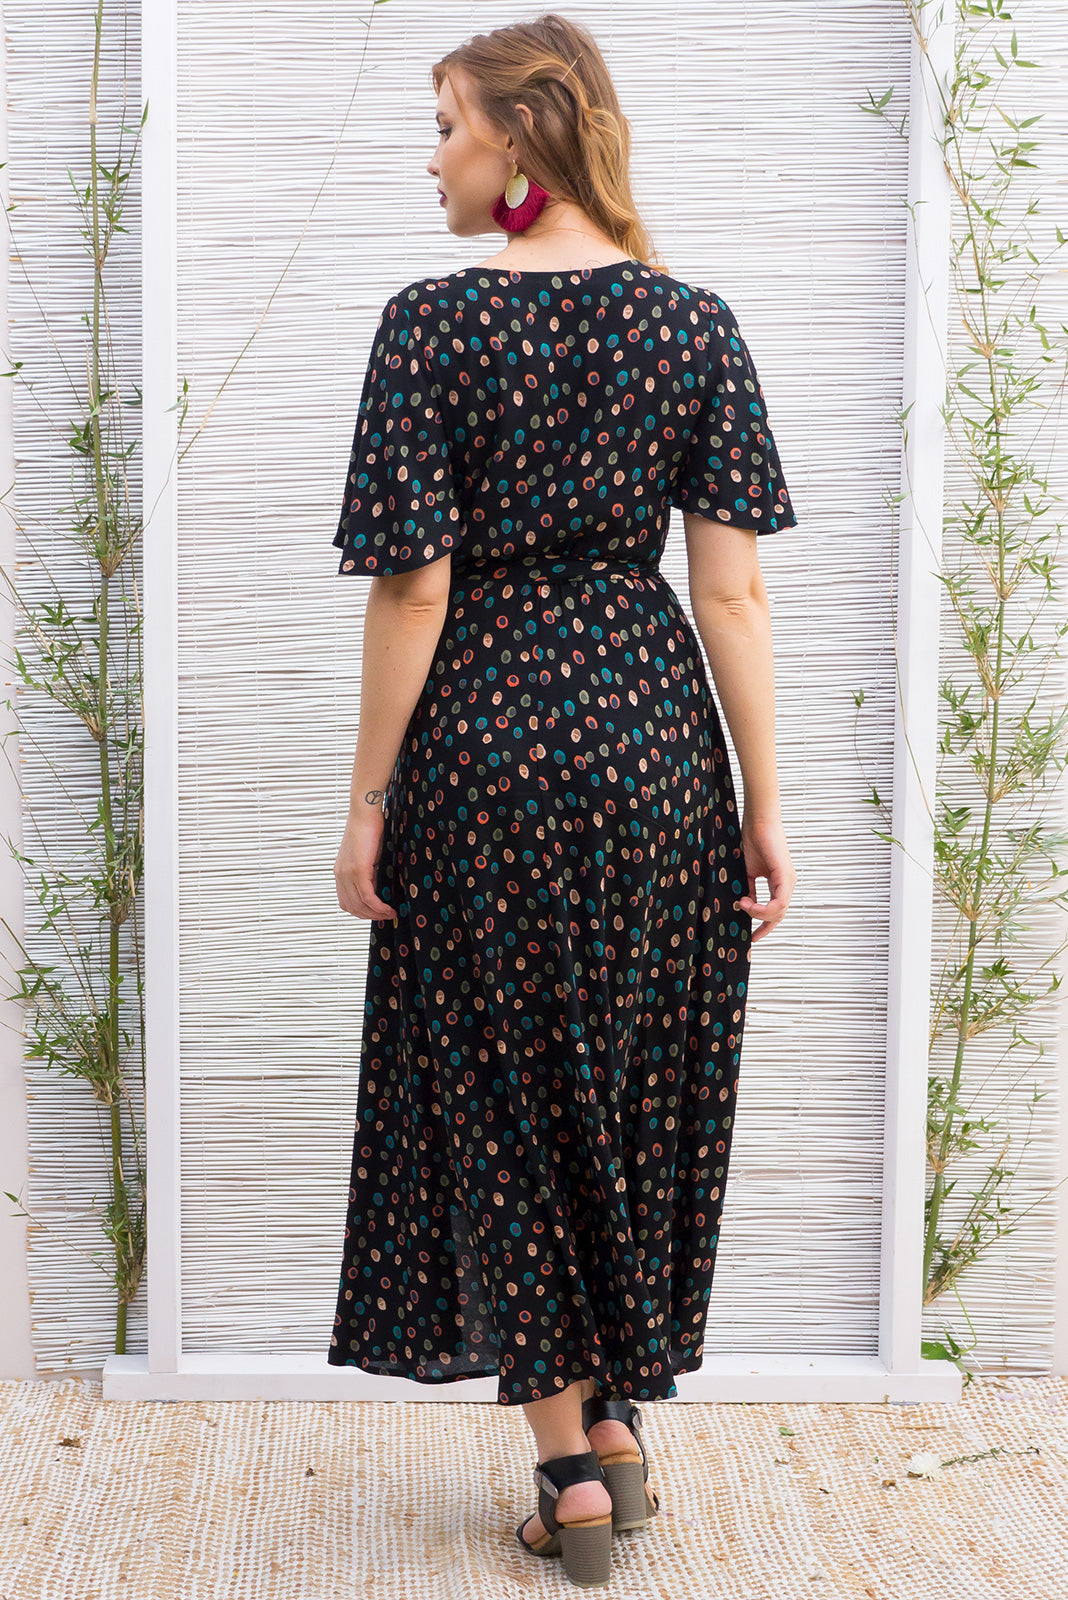 Petal Retro Spot Maxi Wrap Dress features a retro vintage inspired avant garde spot print on a soft woven rayon which wraps around the front and has a spot petal sleeve